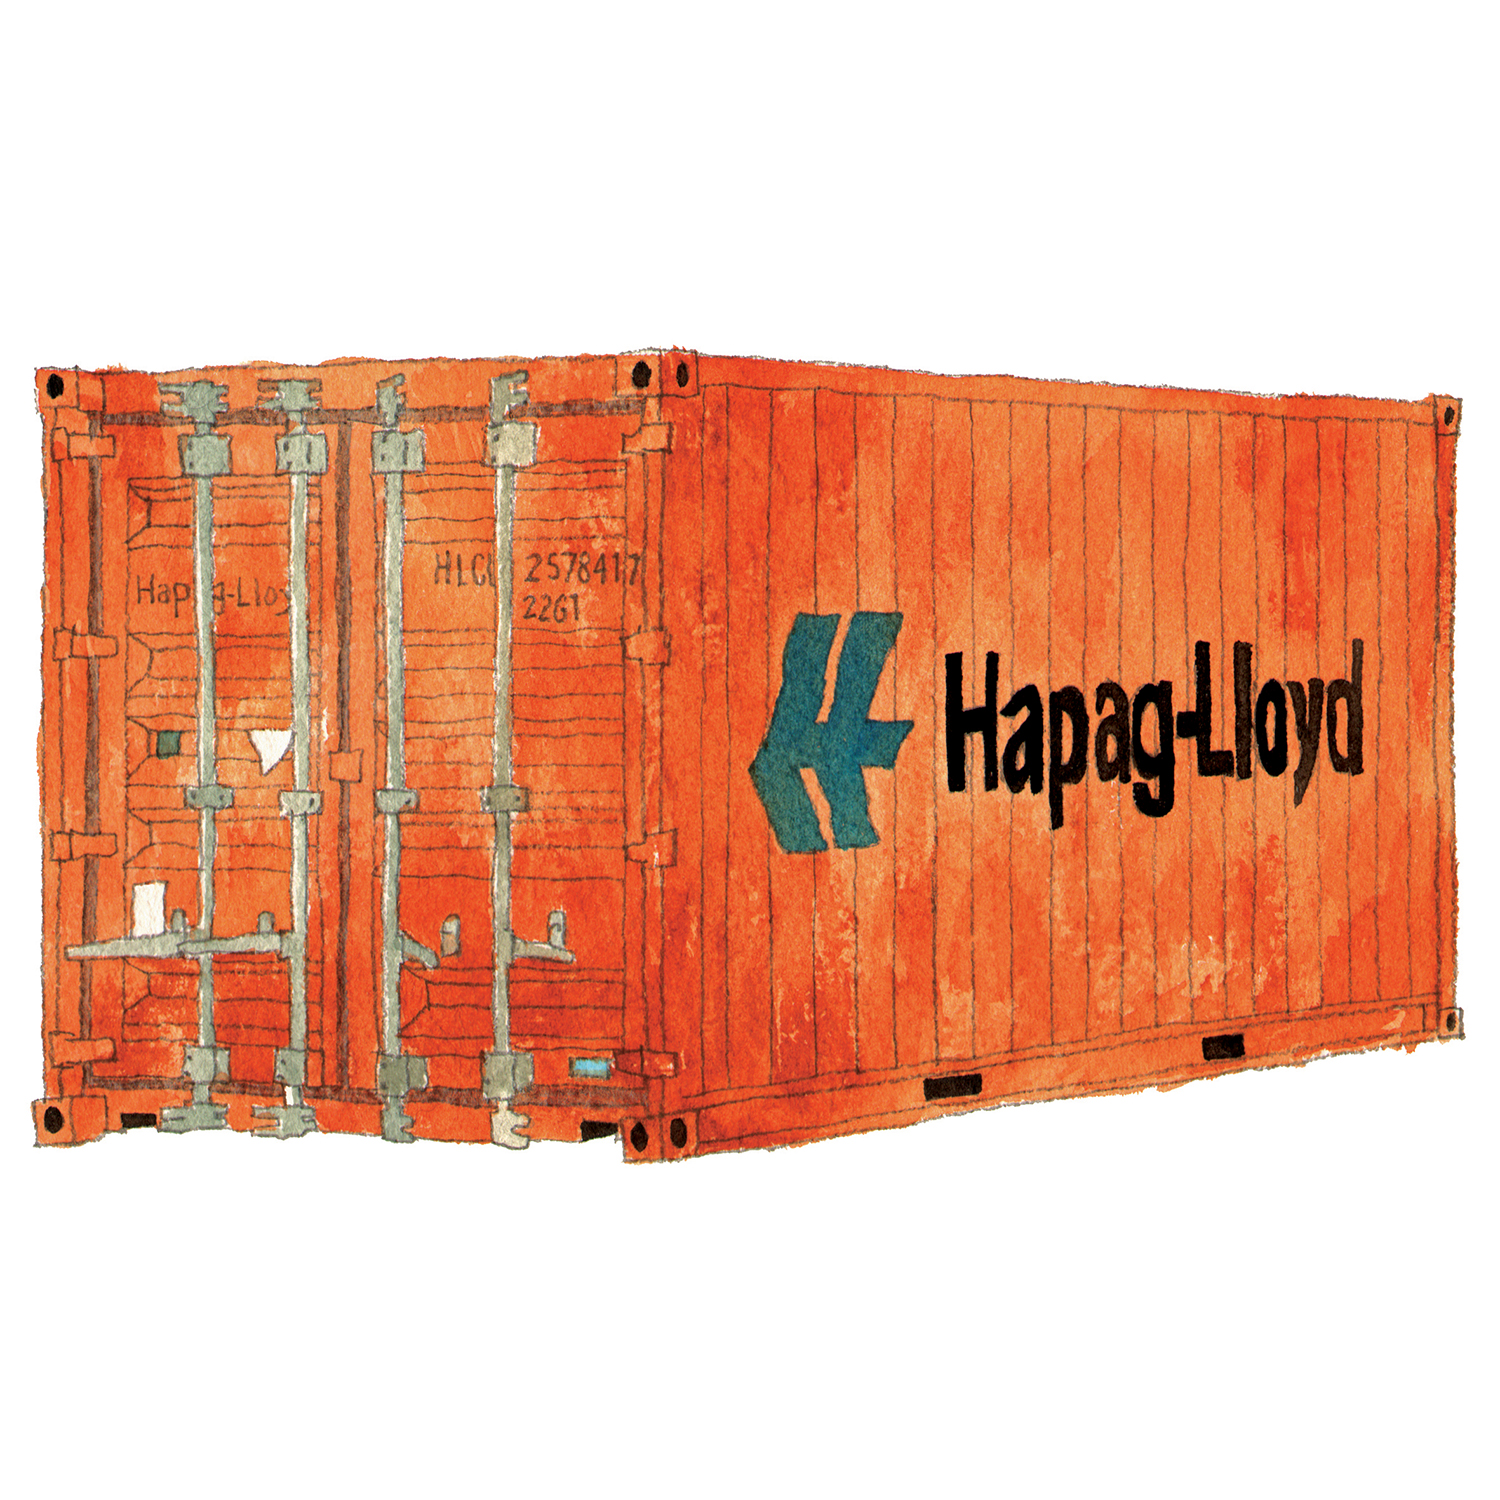 Hapag Lloyd Shipping Container   issue 19 2016